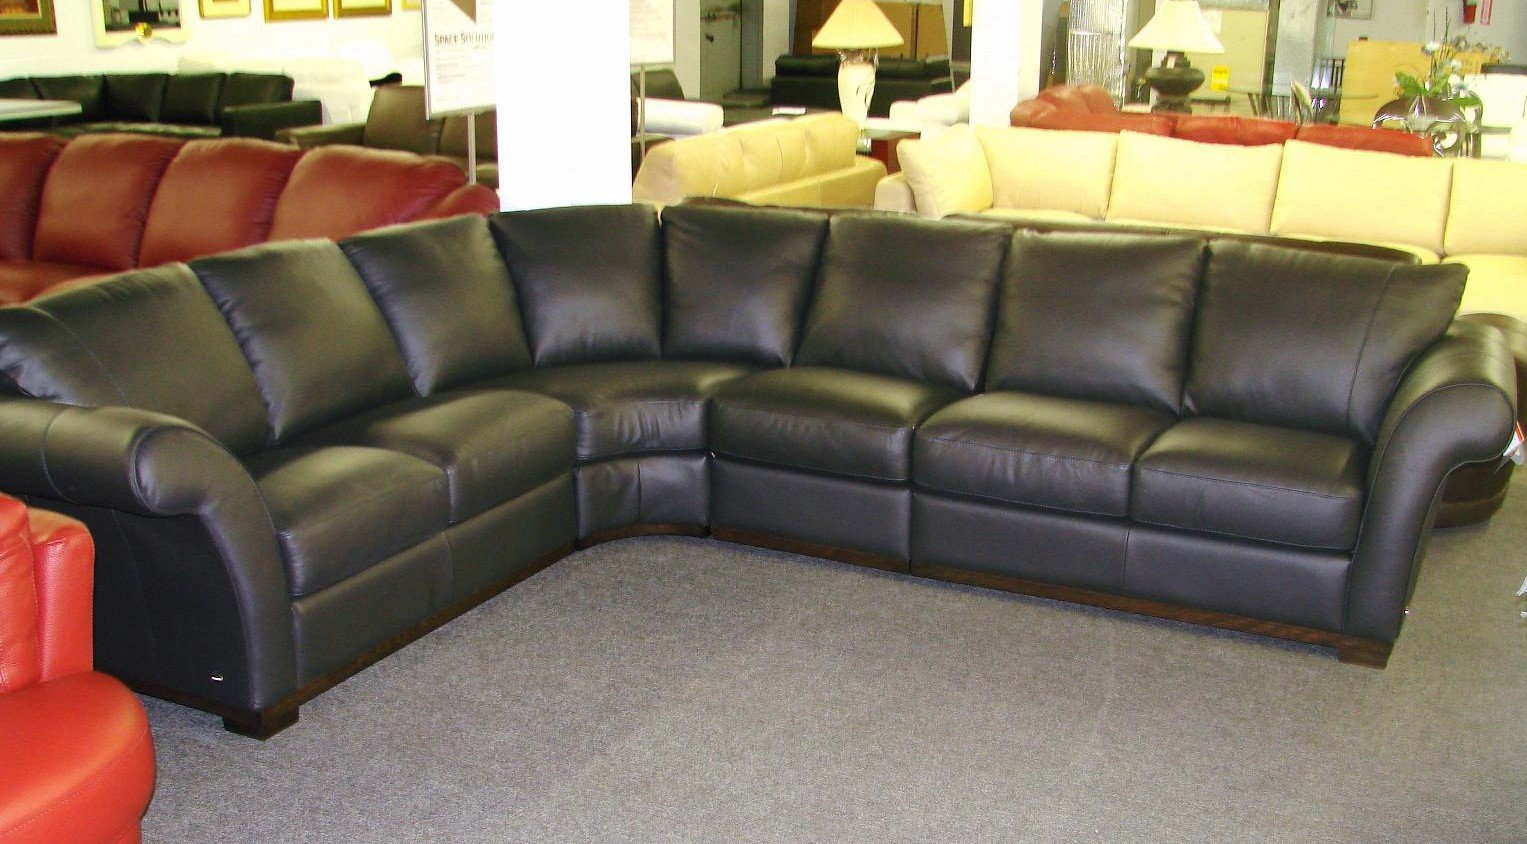 sofa mart labor day sale one cushion pros and cons natuzzi leather sofas sectionals by interior concepts